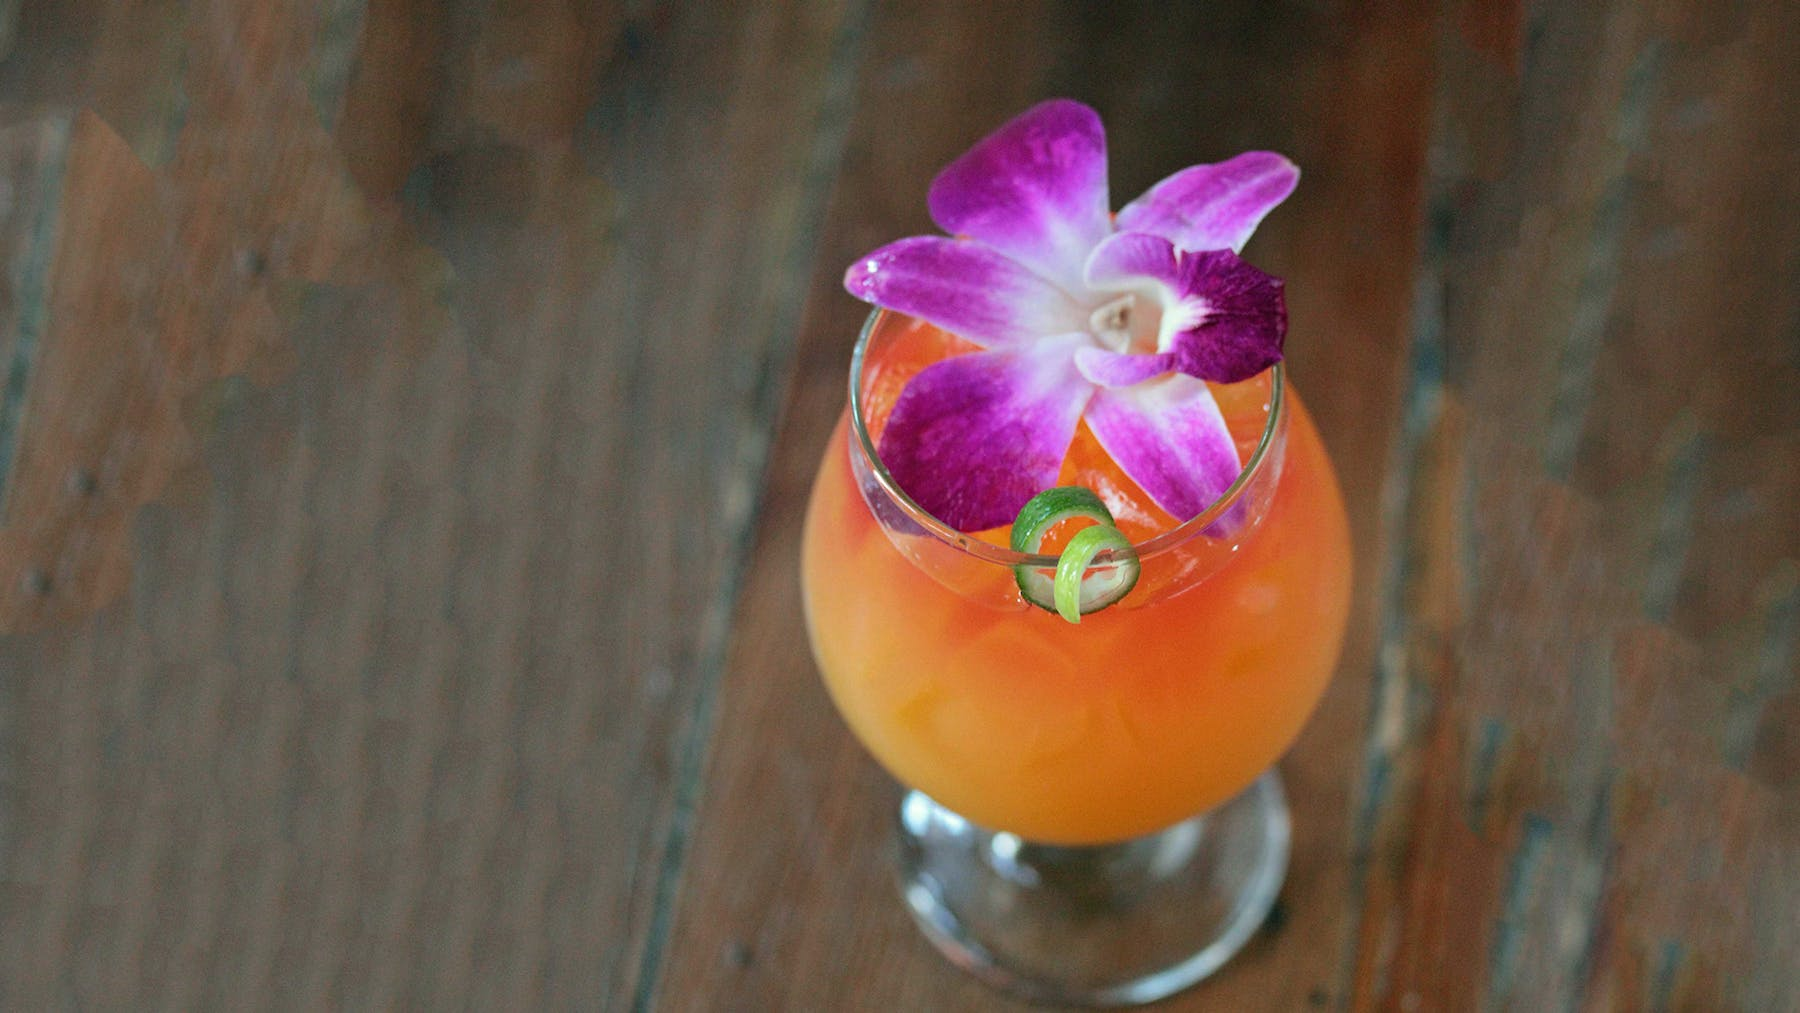 a tropical drink with a flower on top sitting on a table